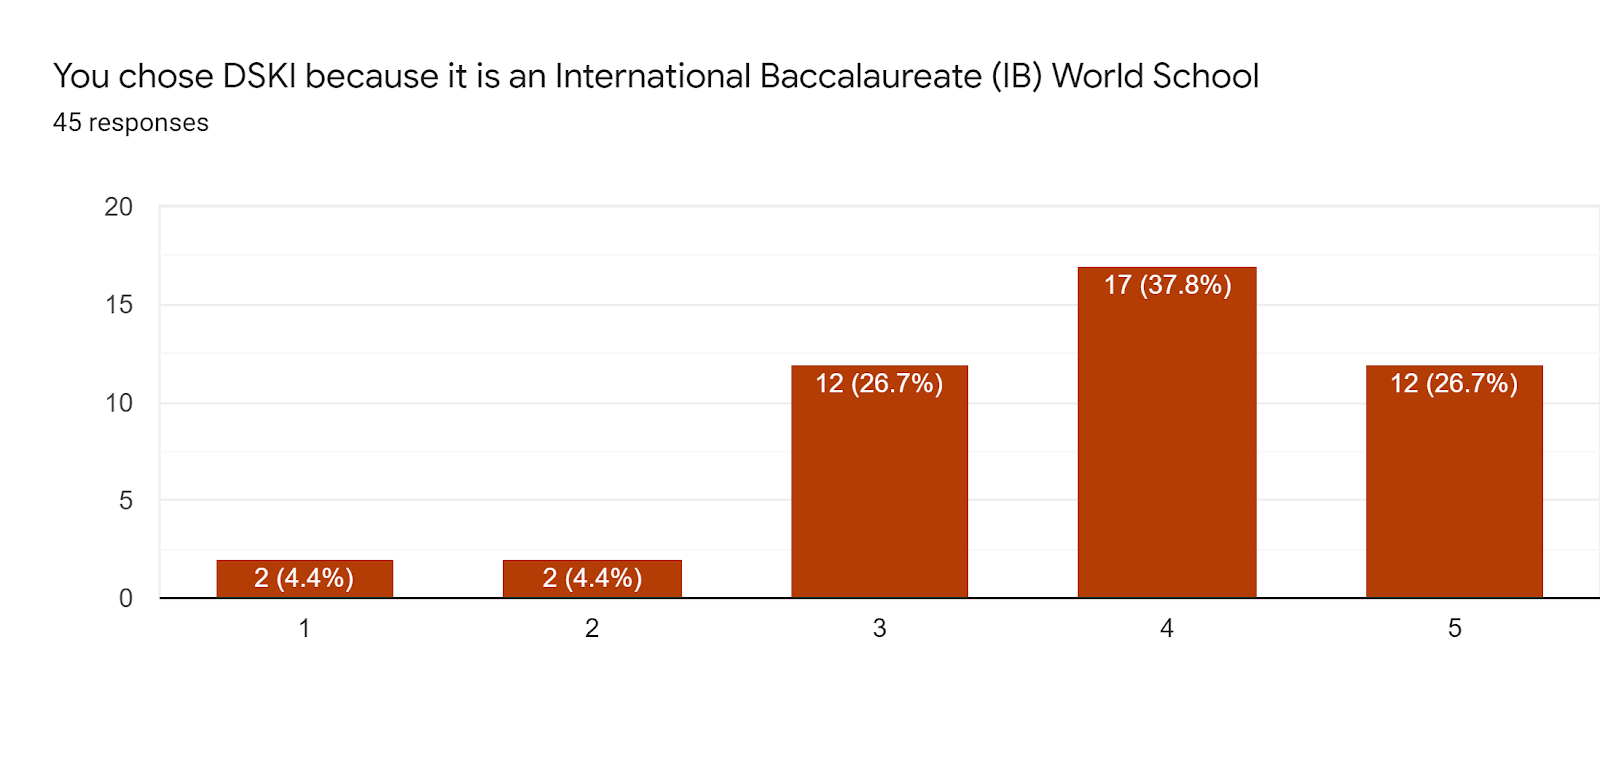 Forms response chart. Question title: You chose DSKI because it is an International Baccalaureate (IB) World School. Number of responses: 45 responses.